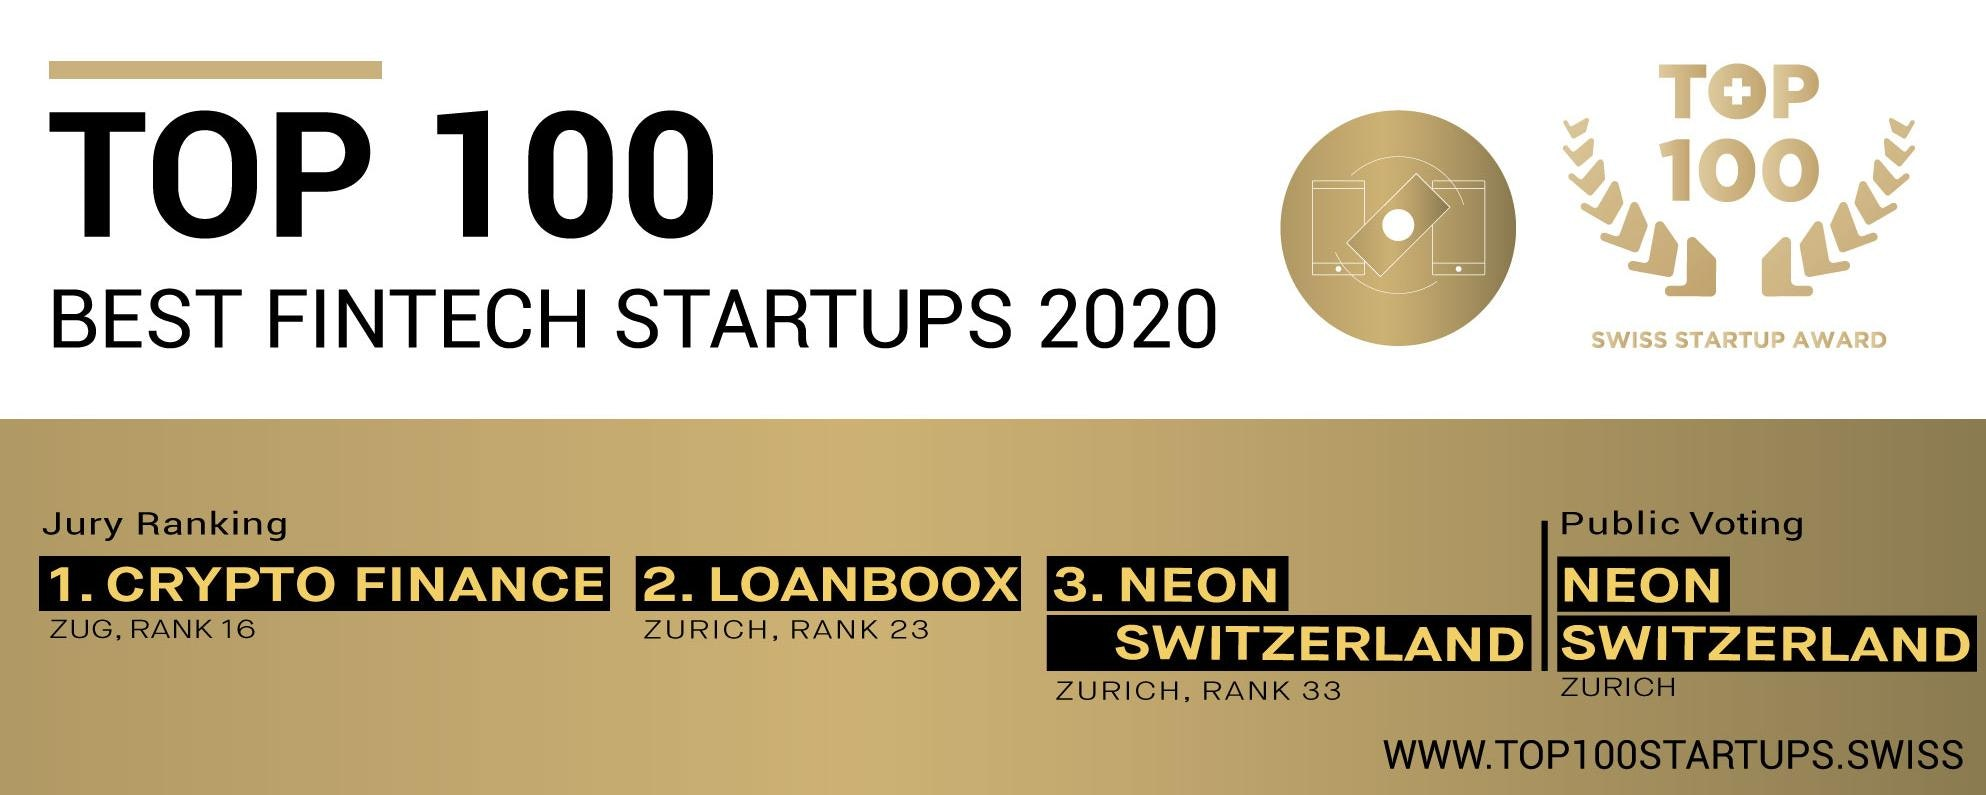 Switzerland's TOP fintech startups 2020